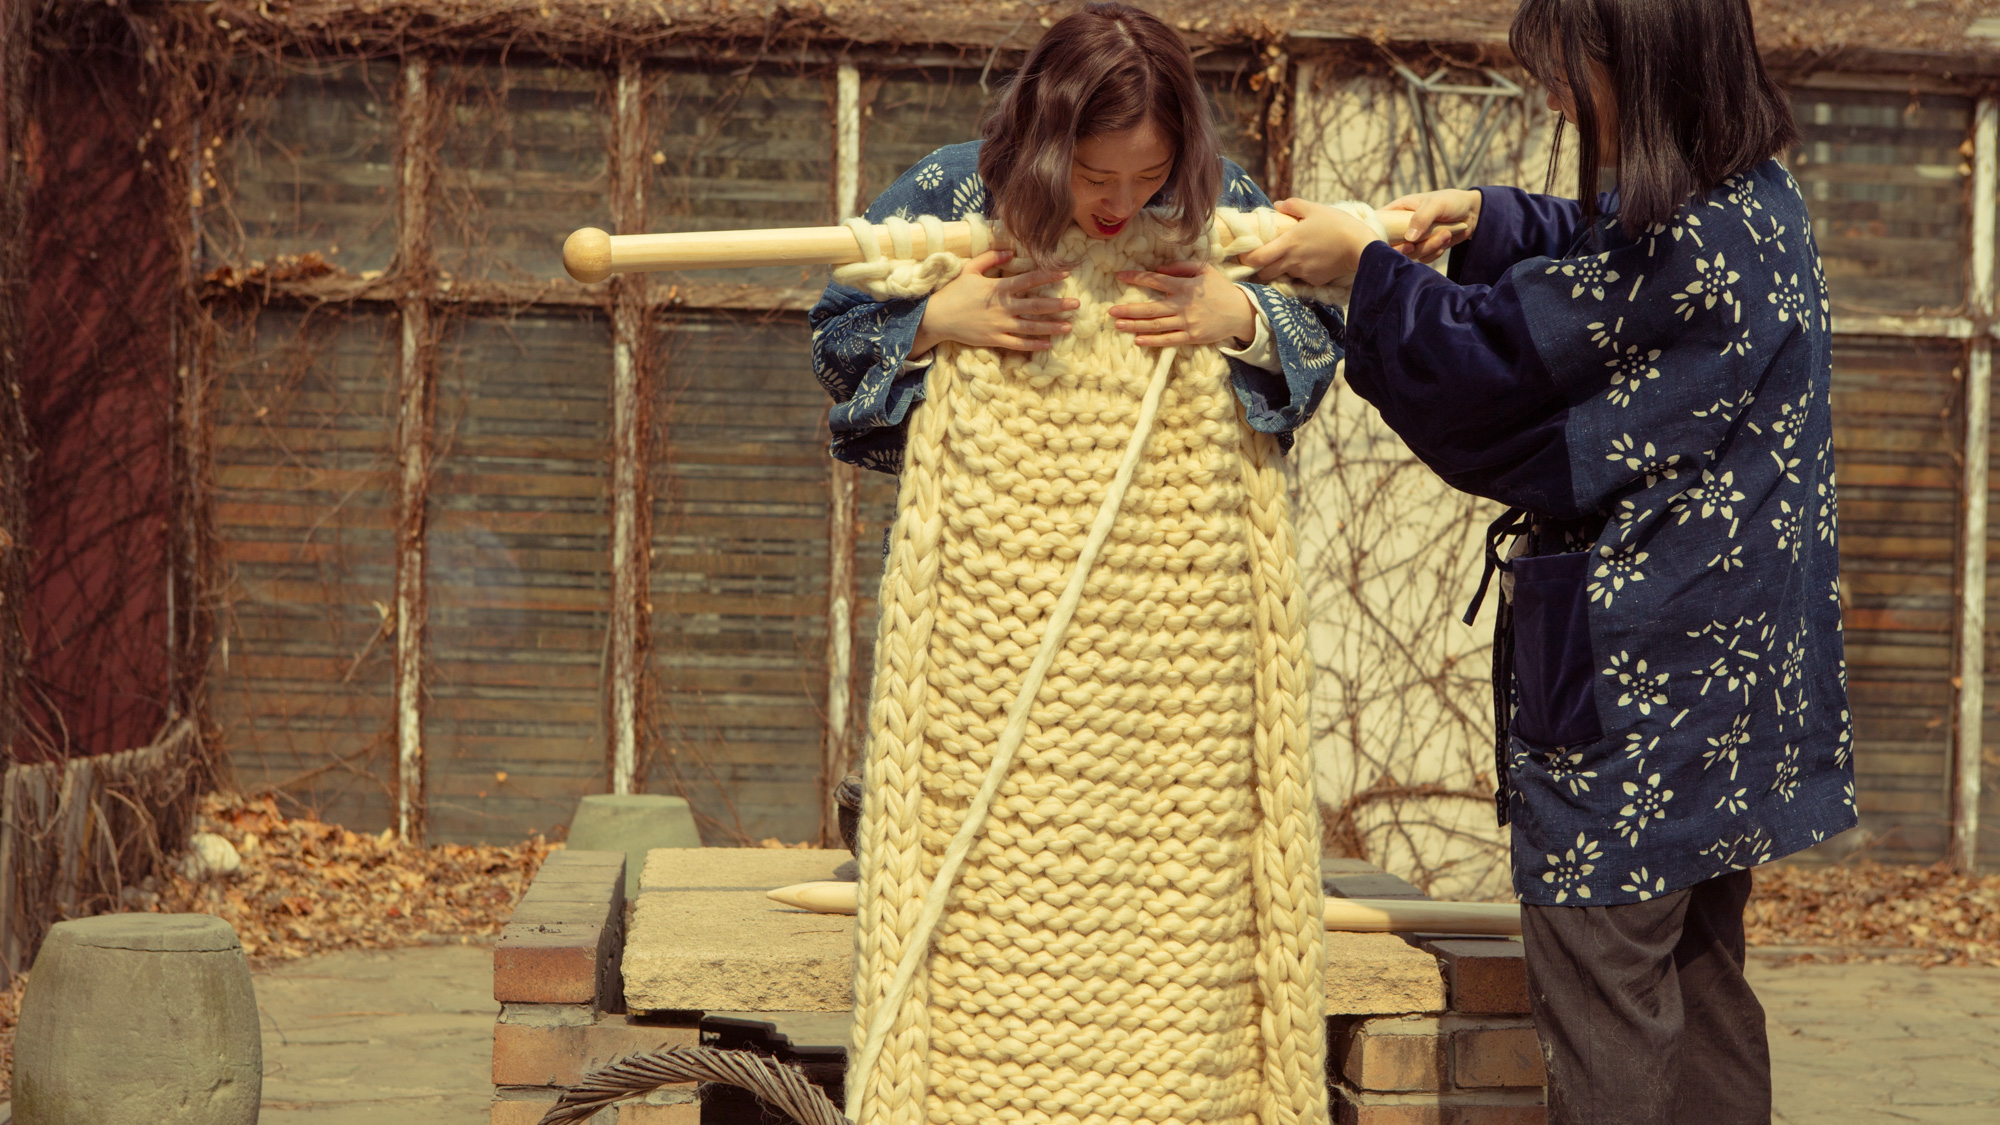 An artist from the video and young girl pose with an oversized knitting needle and scarf.